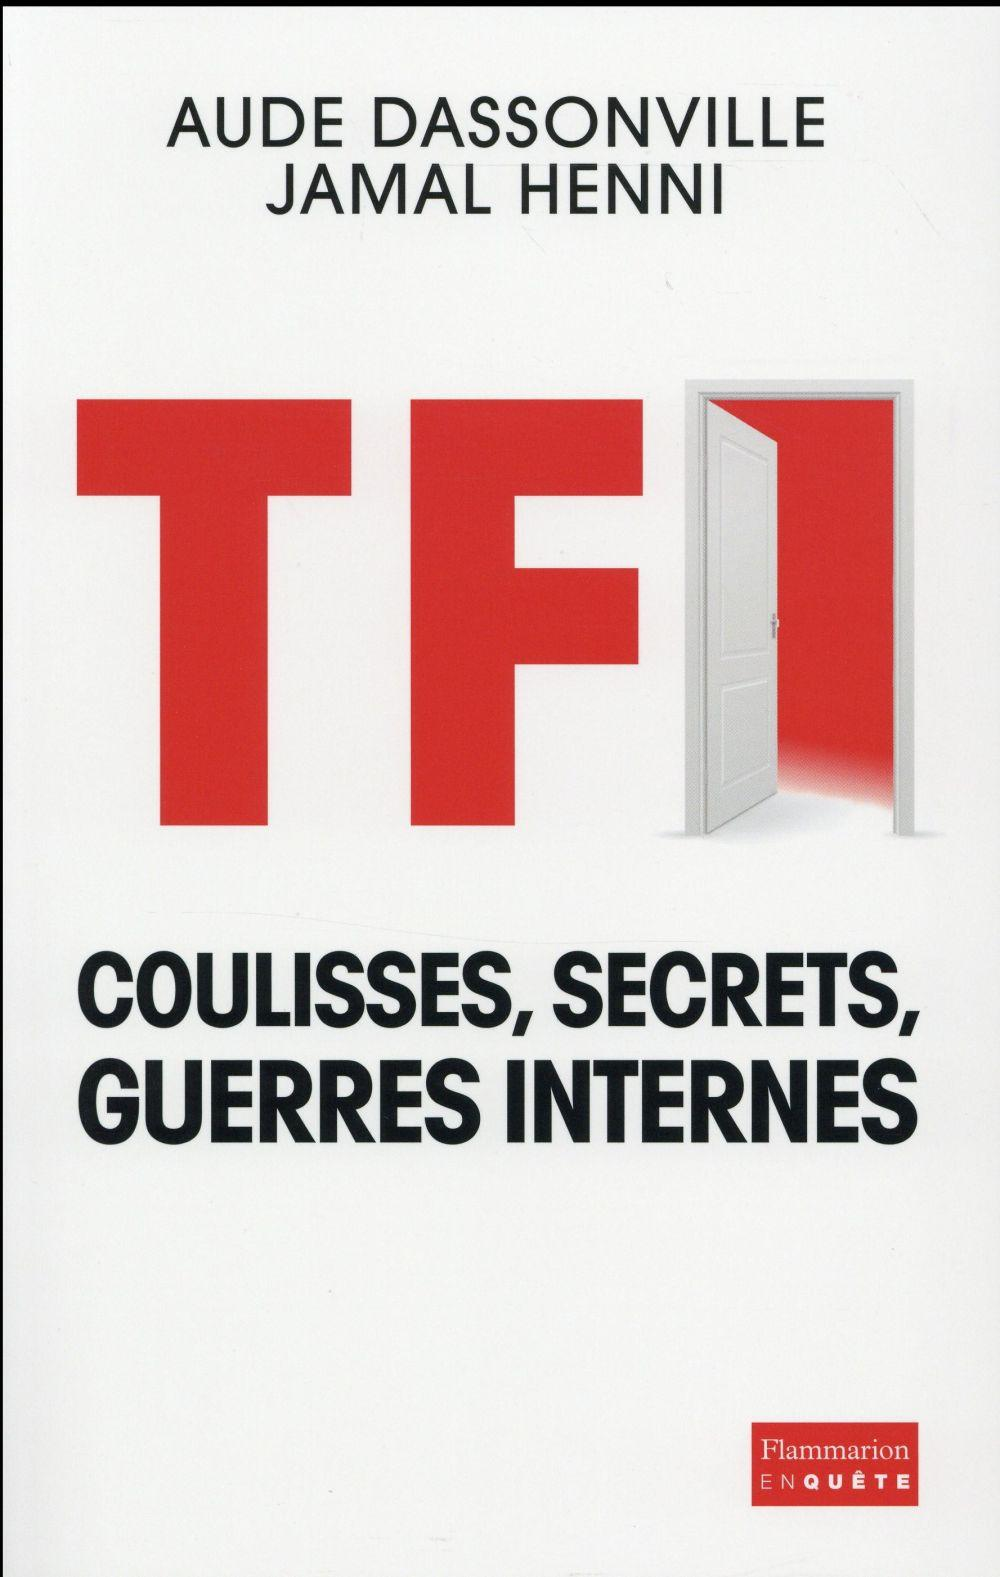 TF1 - Coulisses, secrets, guerres internes  - Aude Dassonville  - Jamal Henni